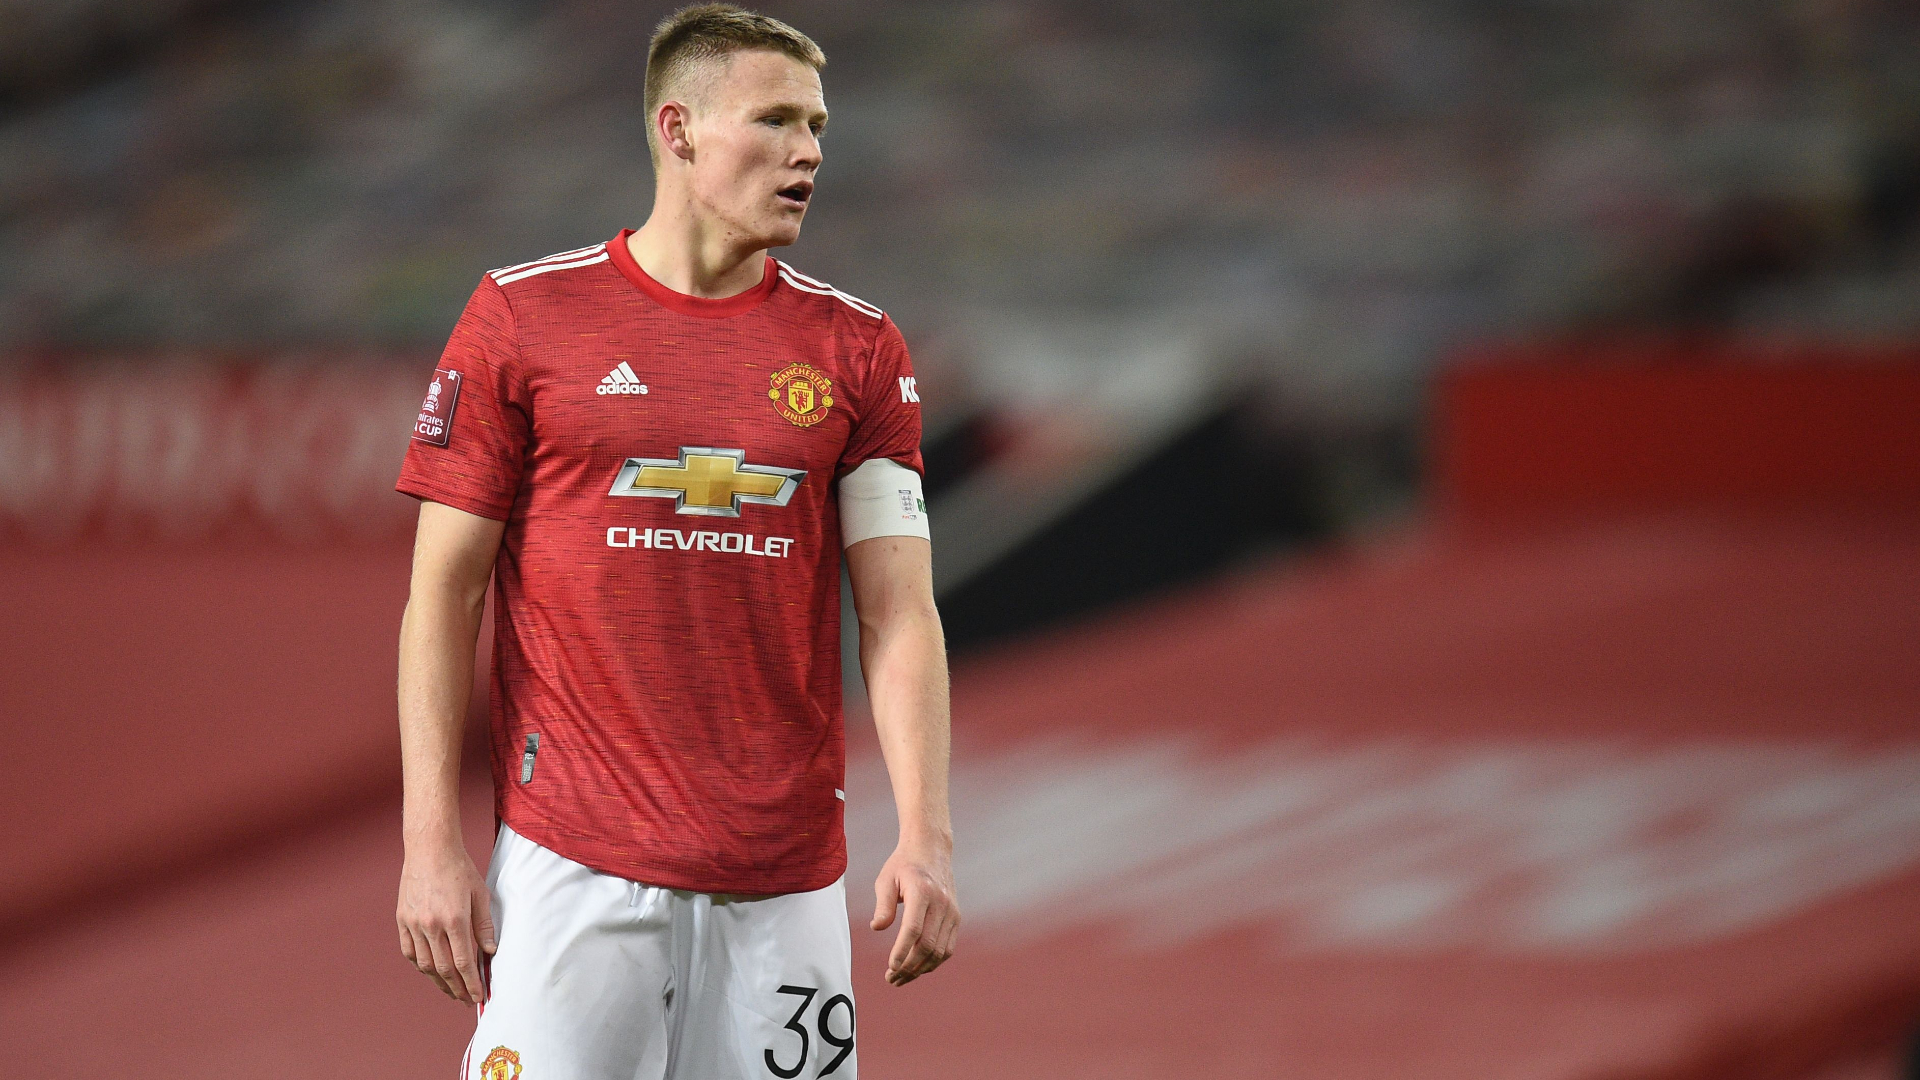 'I love this football club' - Man Utd midfielder McTominay honoured to captain boyhood side in FA Cup win